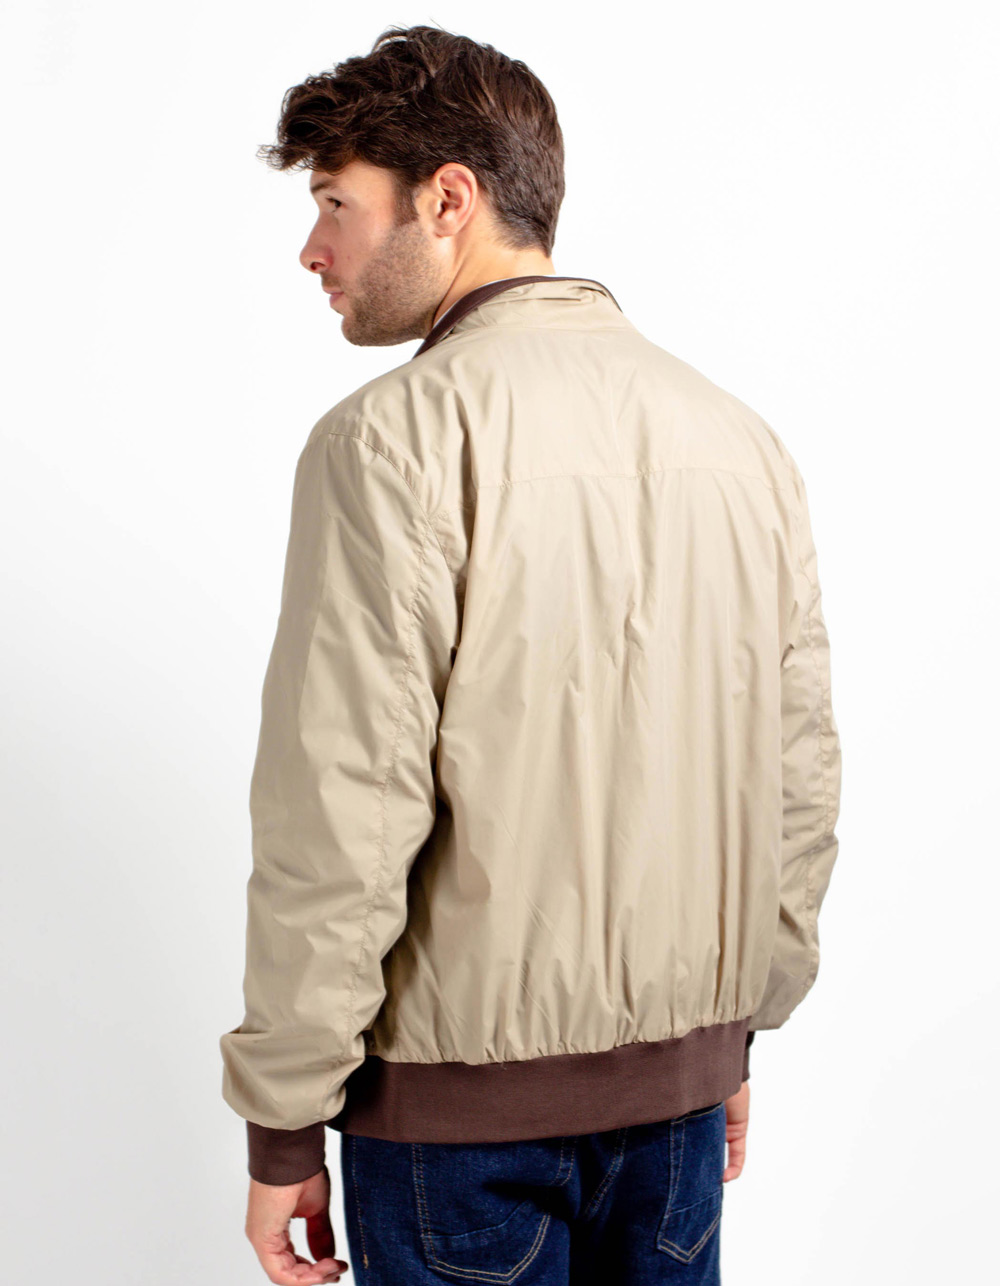 Sports windbreaker jacket - Backside